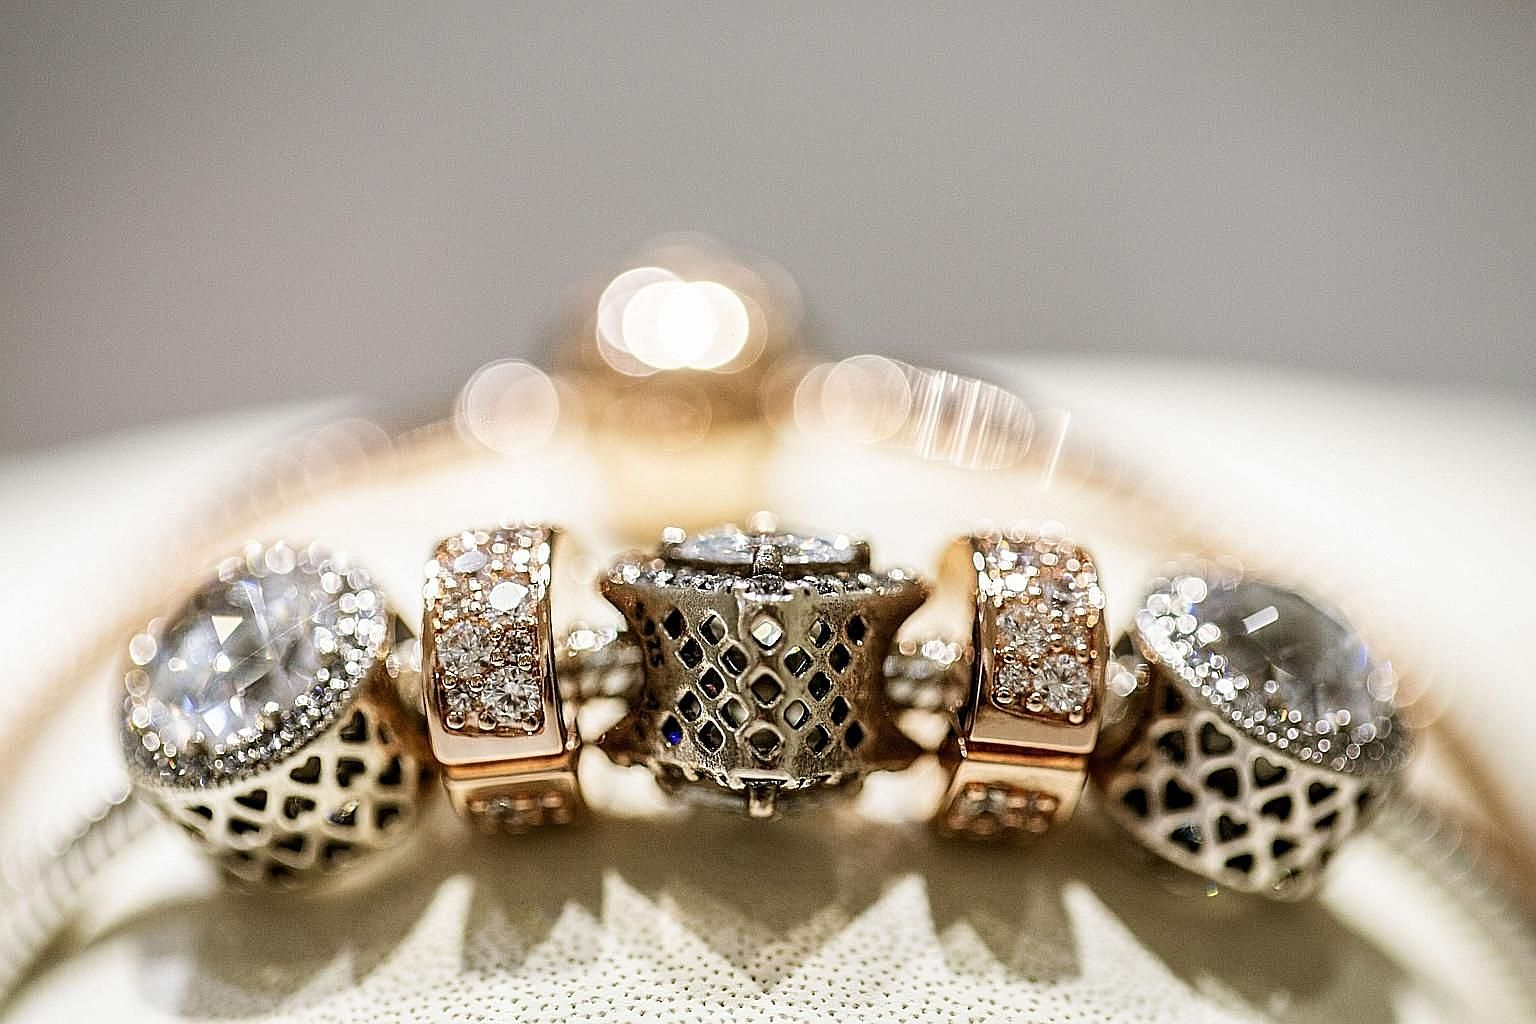 Analysts covering Pandora have had a mixed record predicting the wild stock market swings of the jewellery maker.